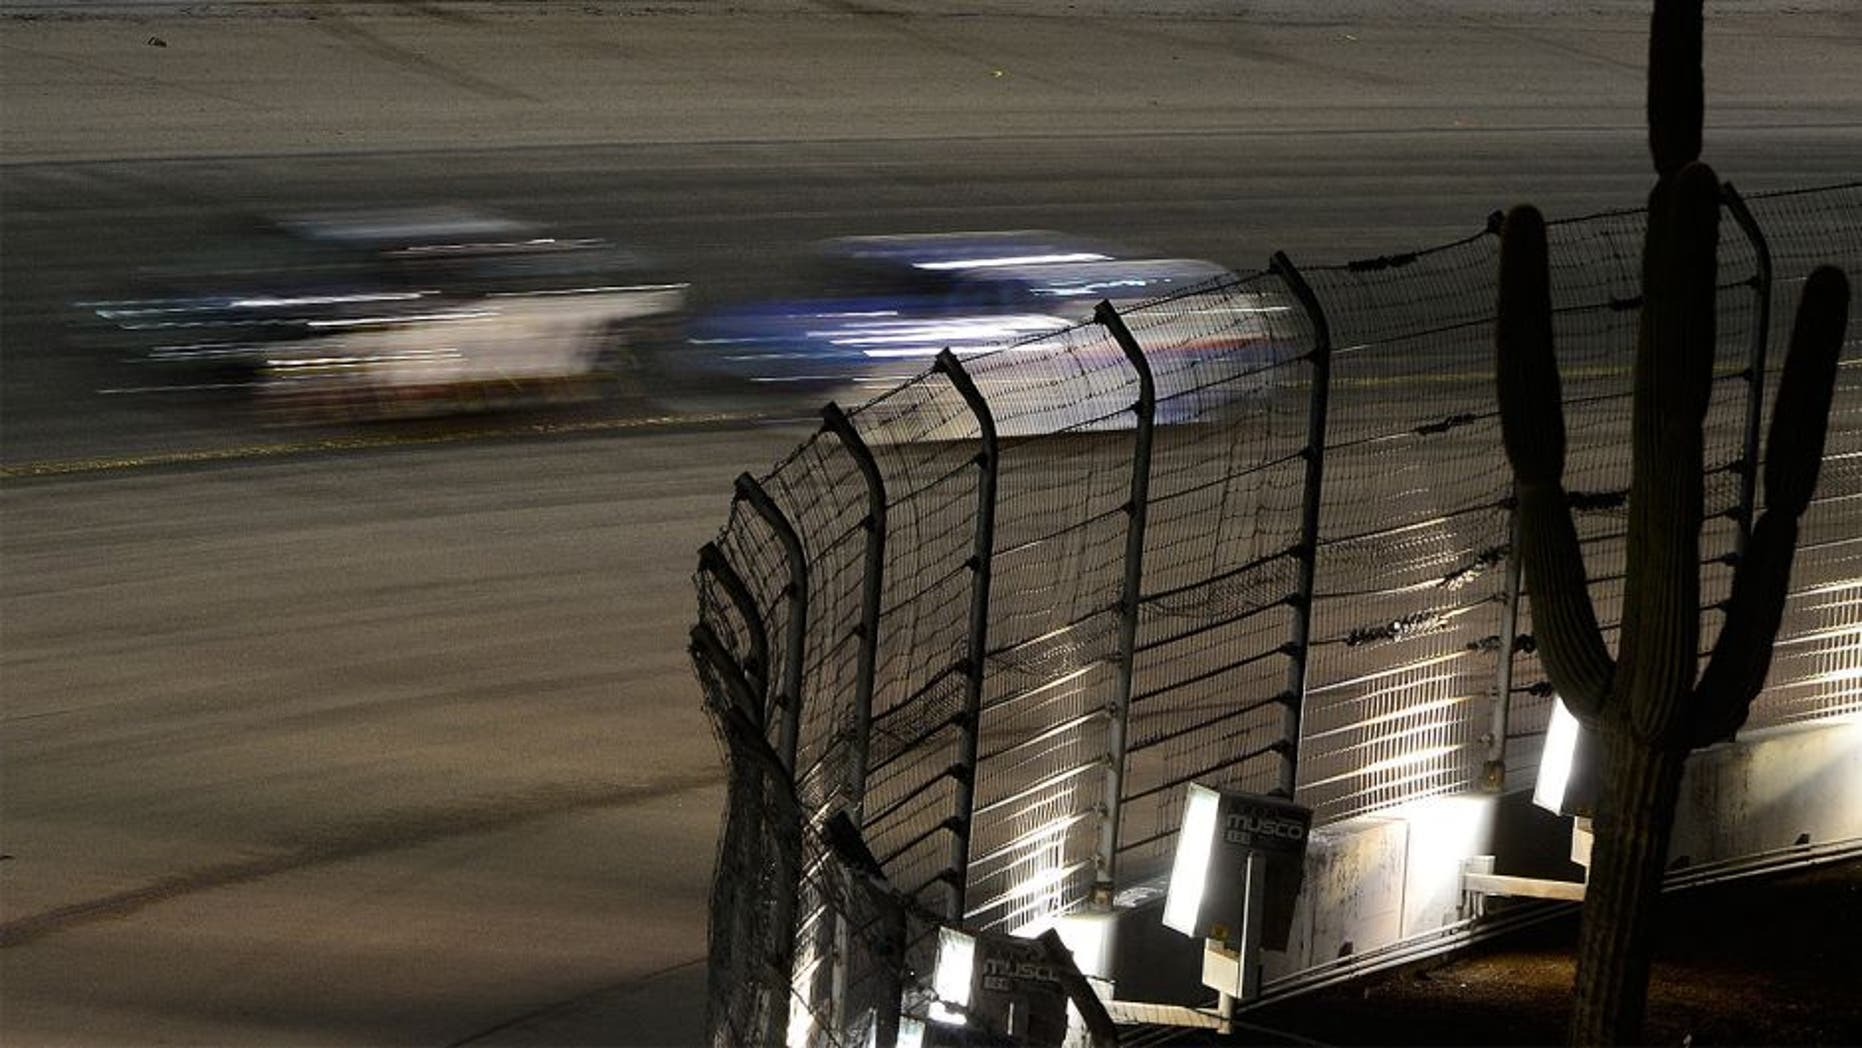 AVONDALE, AZ - NOVEMBER 15: A view of race action during the NASCAR Sprint Cup Series Quicken Loans Race for Heroes 500 at Phoenix International Raceway on November 15, 2015 in Avondale, Arizona. (Photo by Robert Laberge/NASCAR via Getty Images)